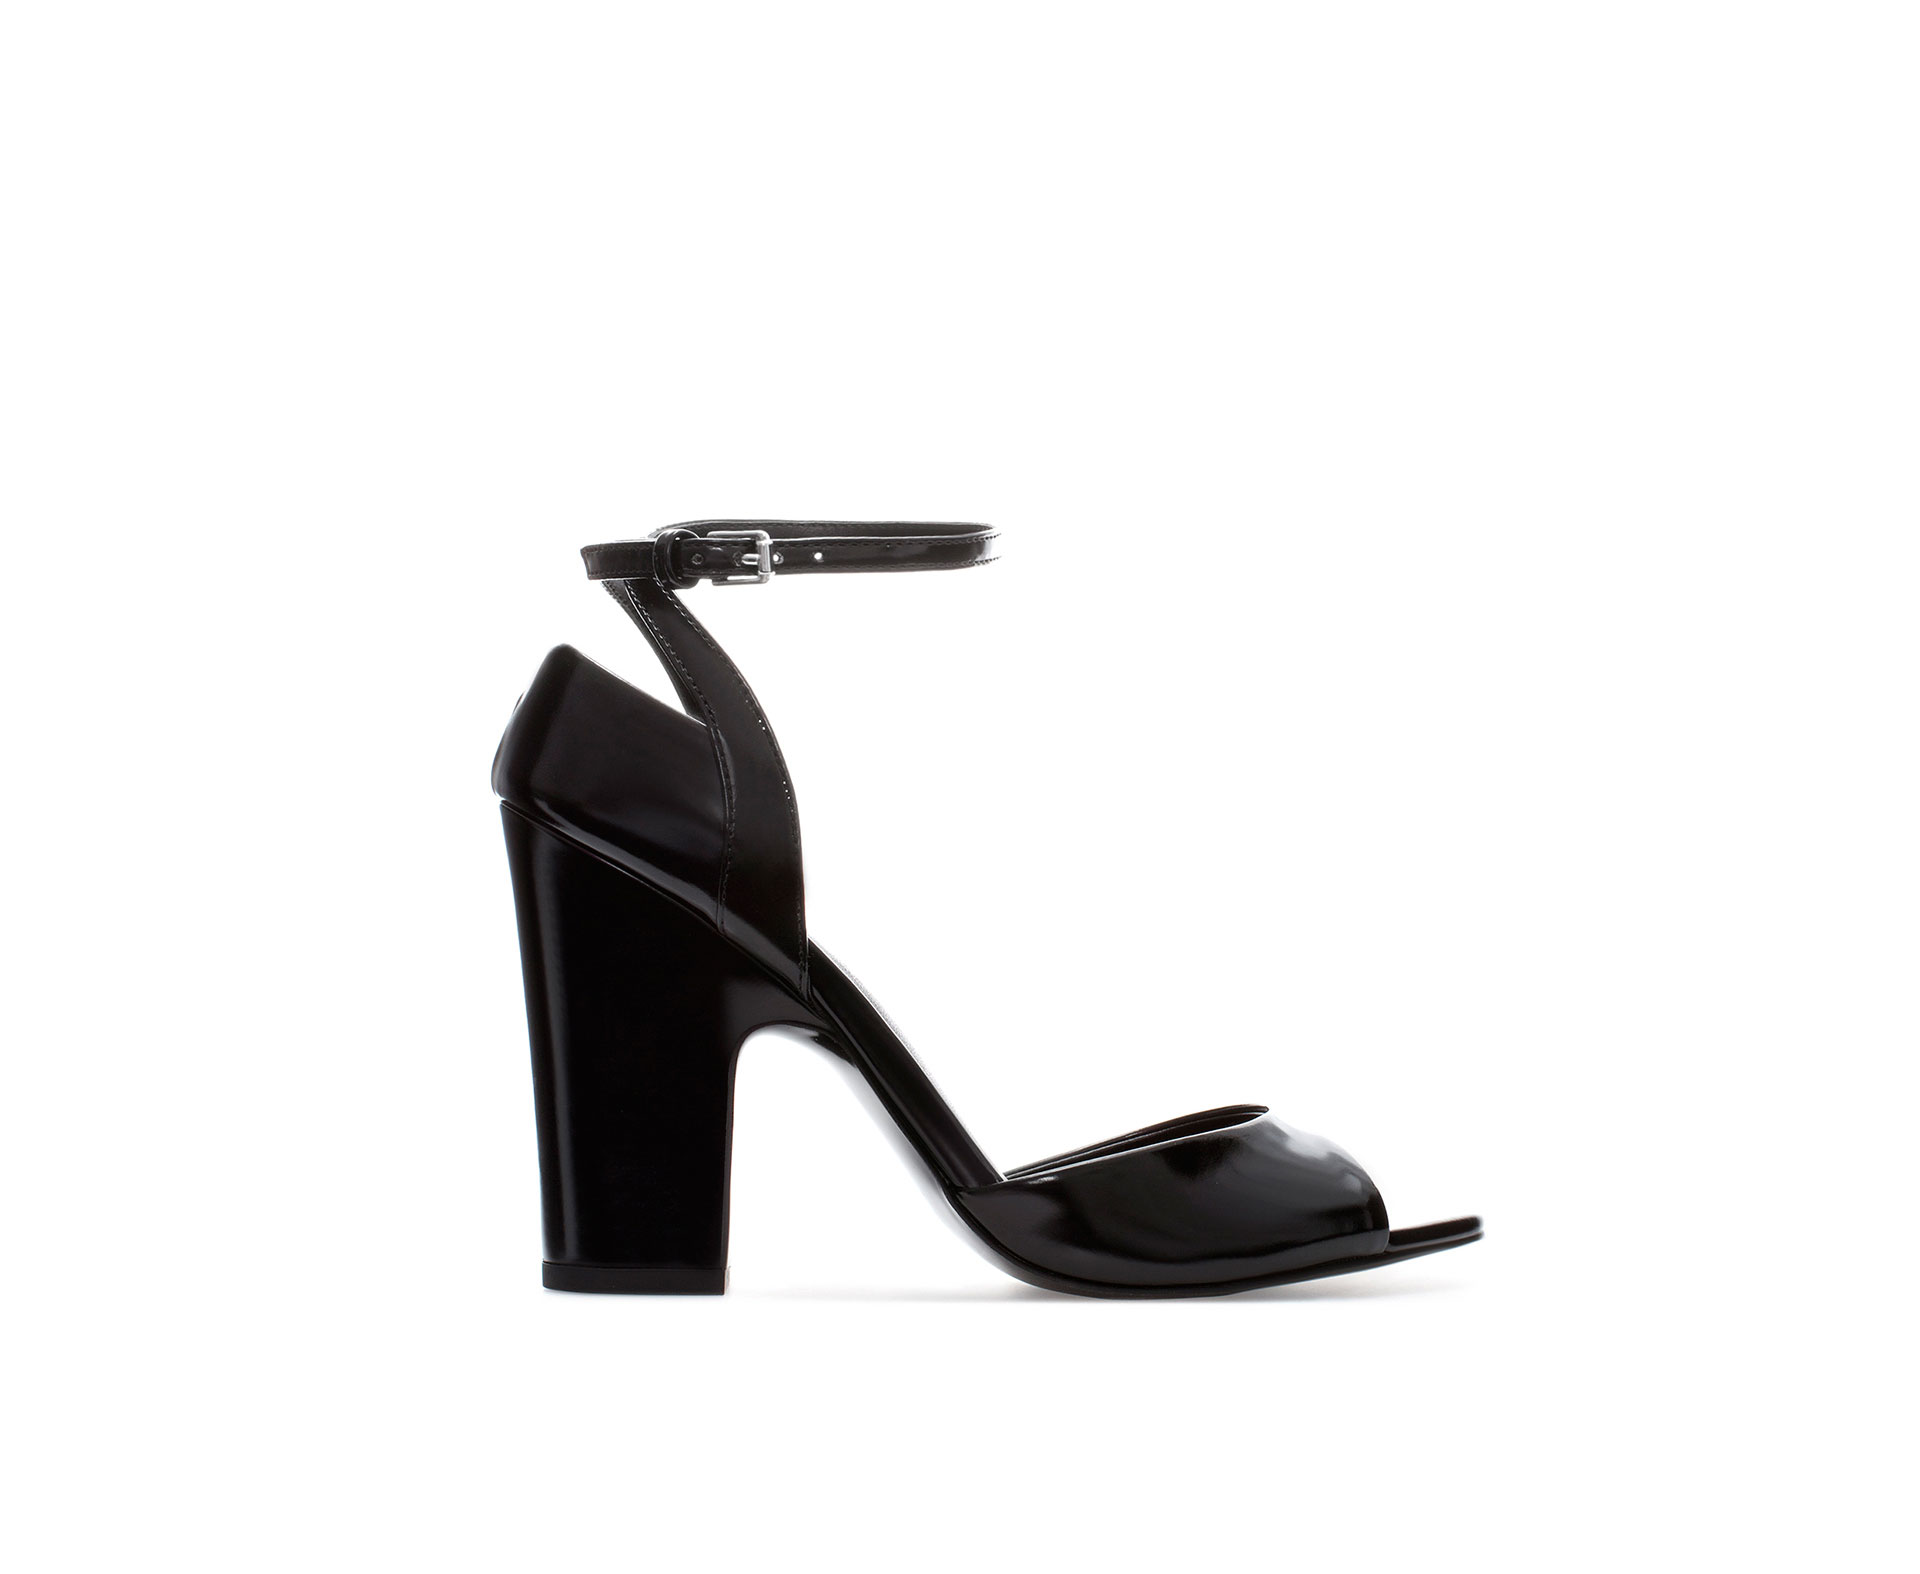 Zara High Heel Sandal with Ankle Strap in Black | Lyst